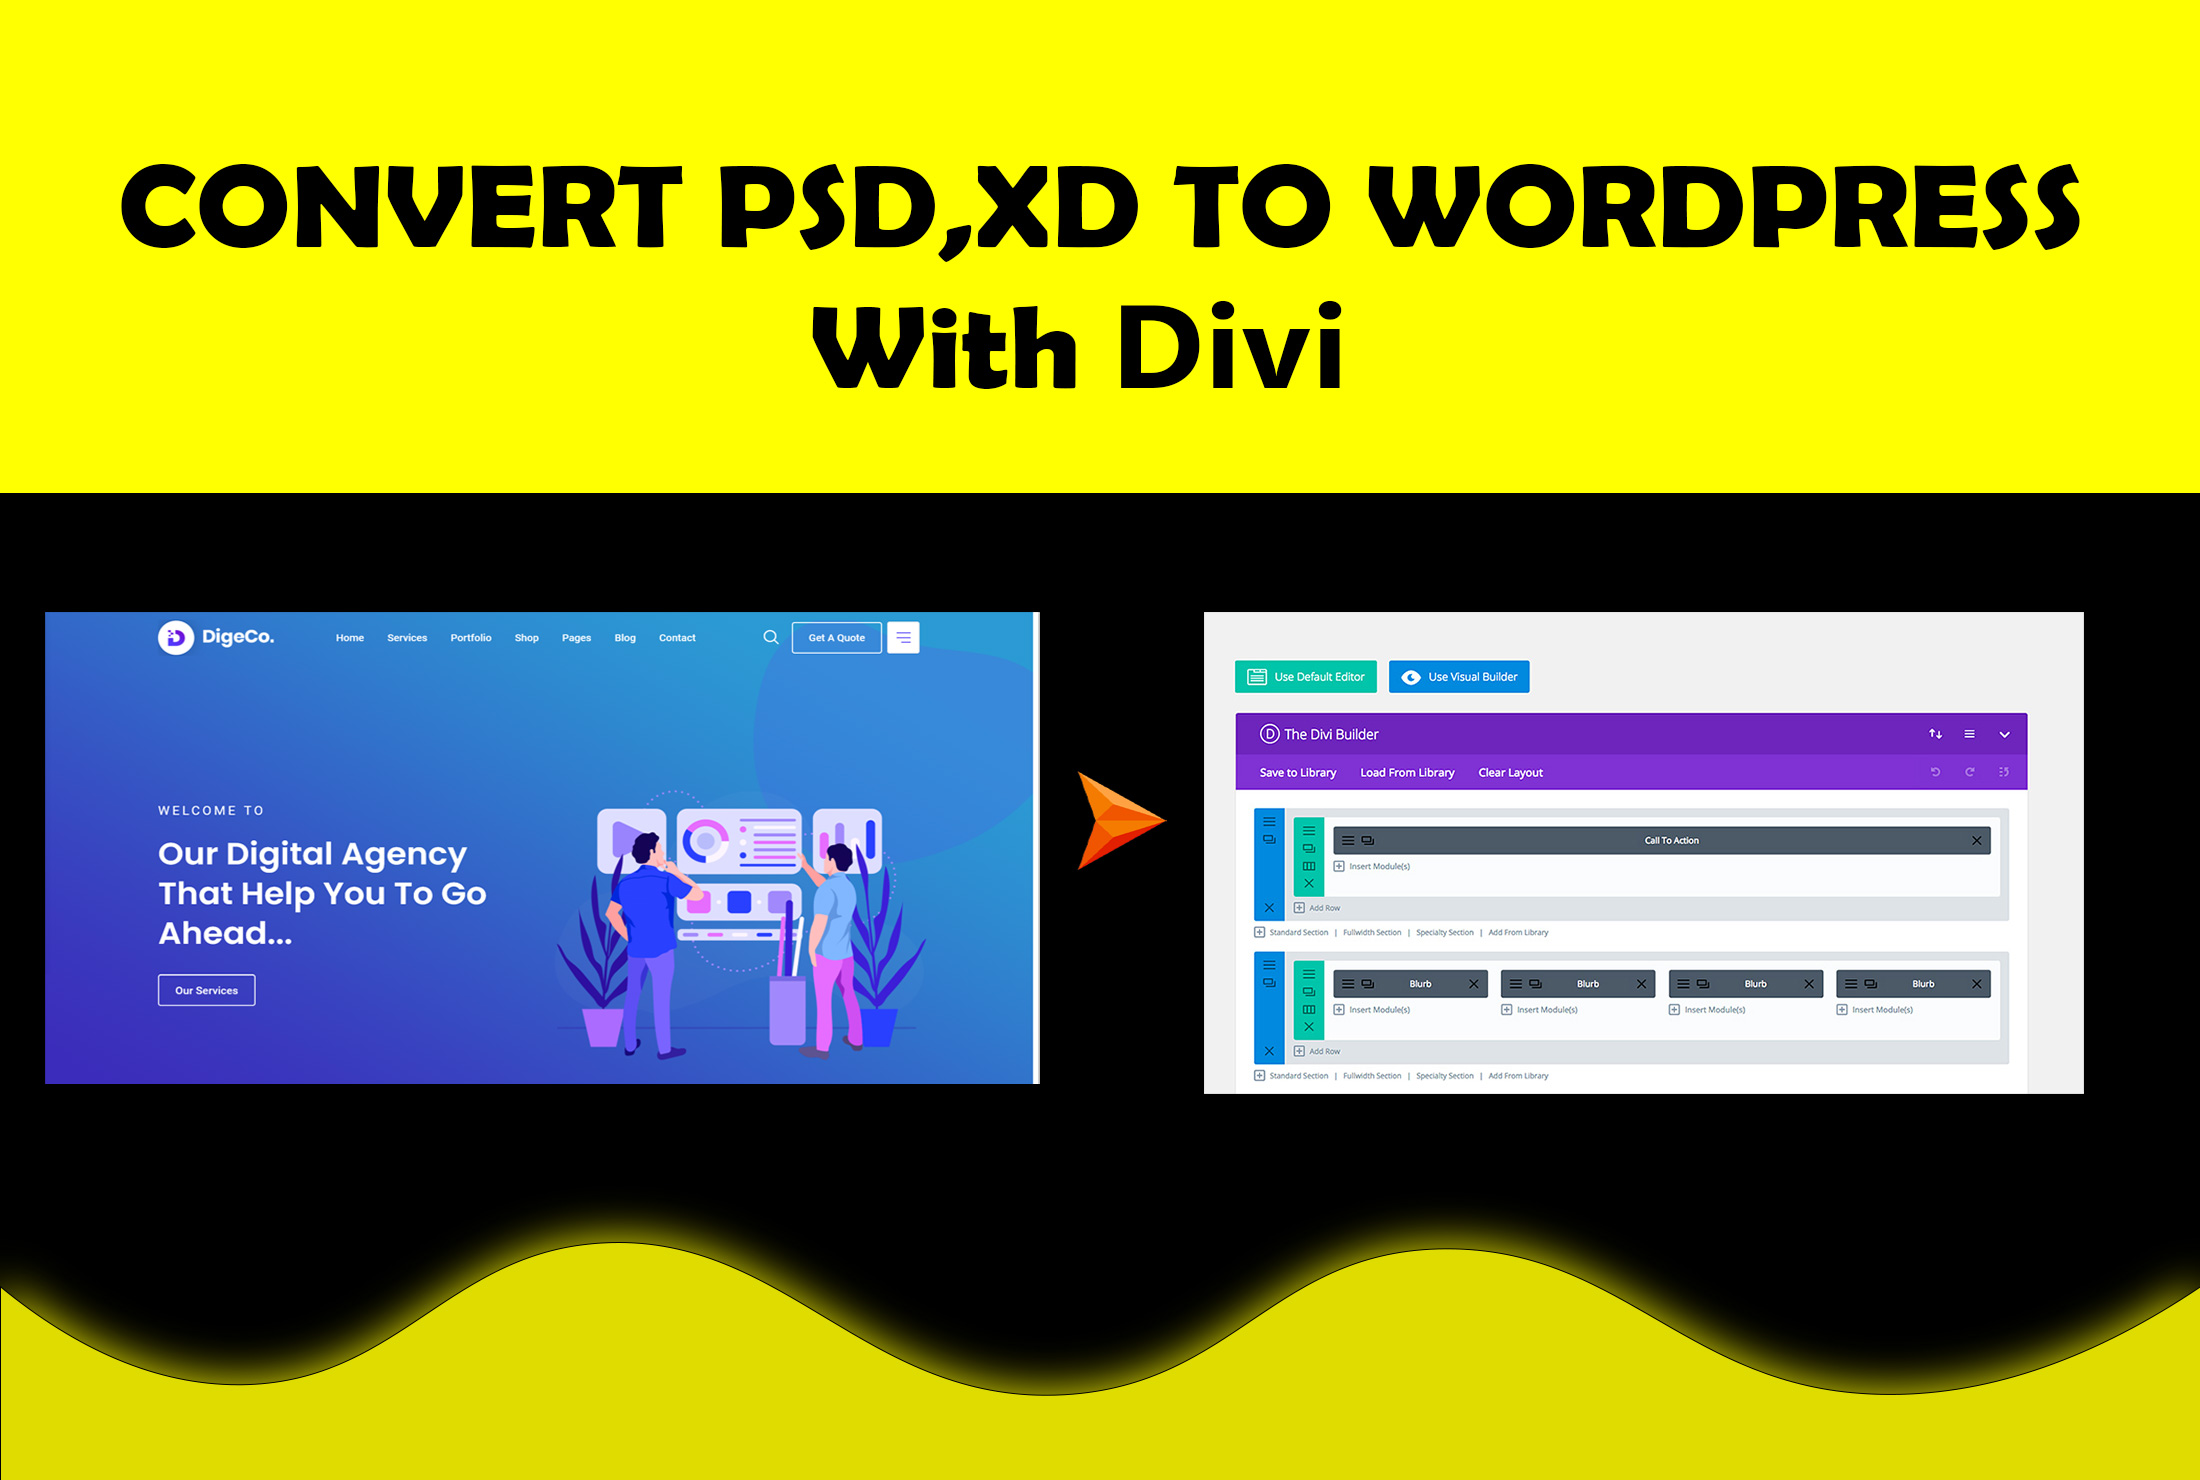 Built your wordpress website with divi builder from elegant theme